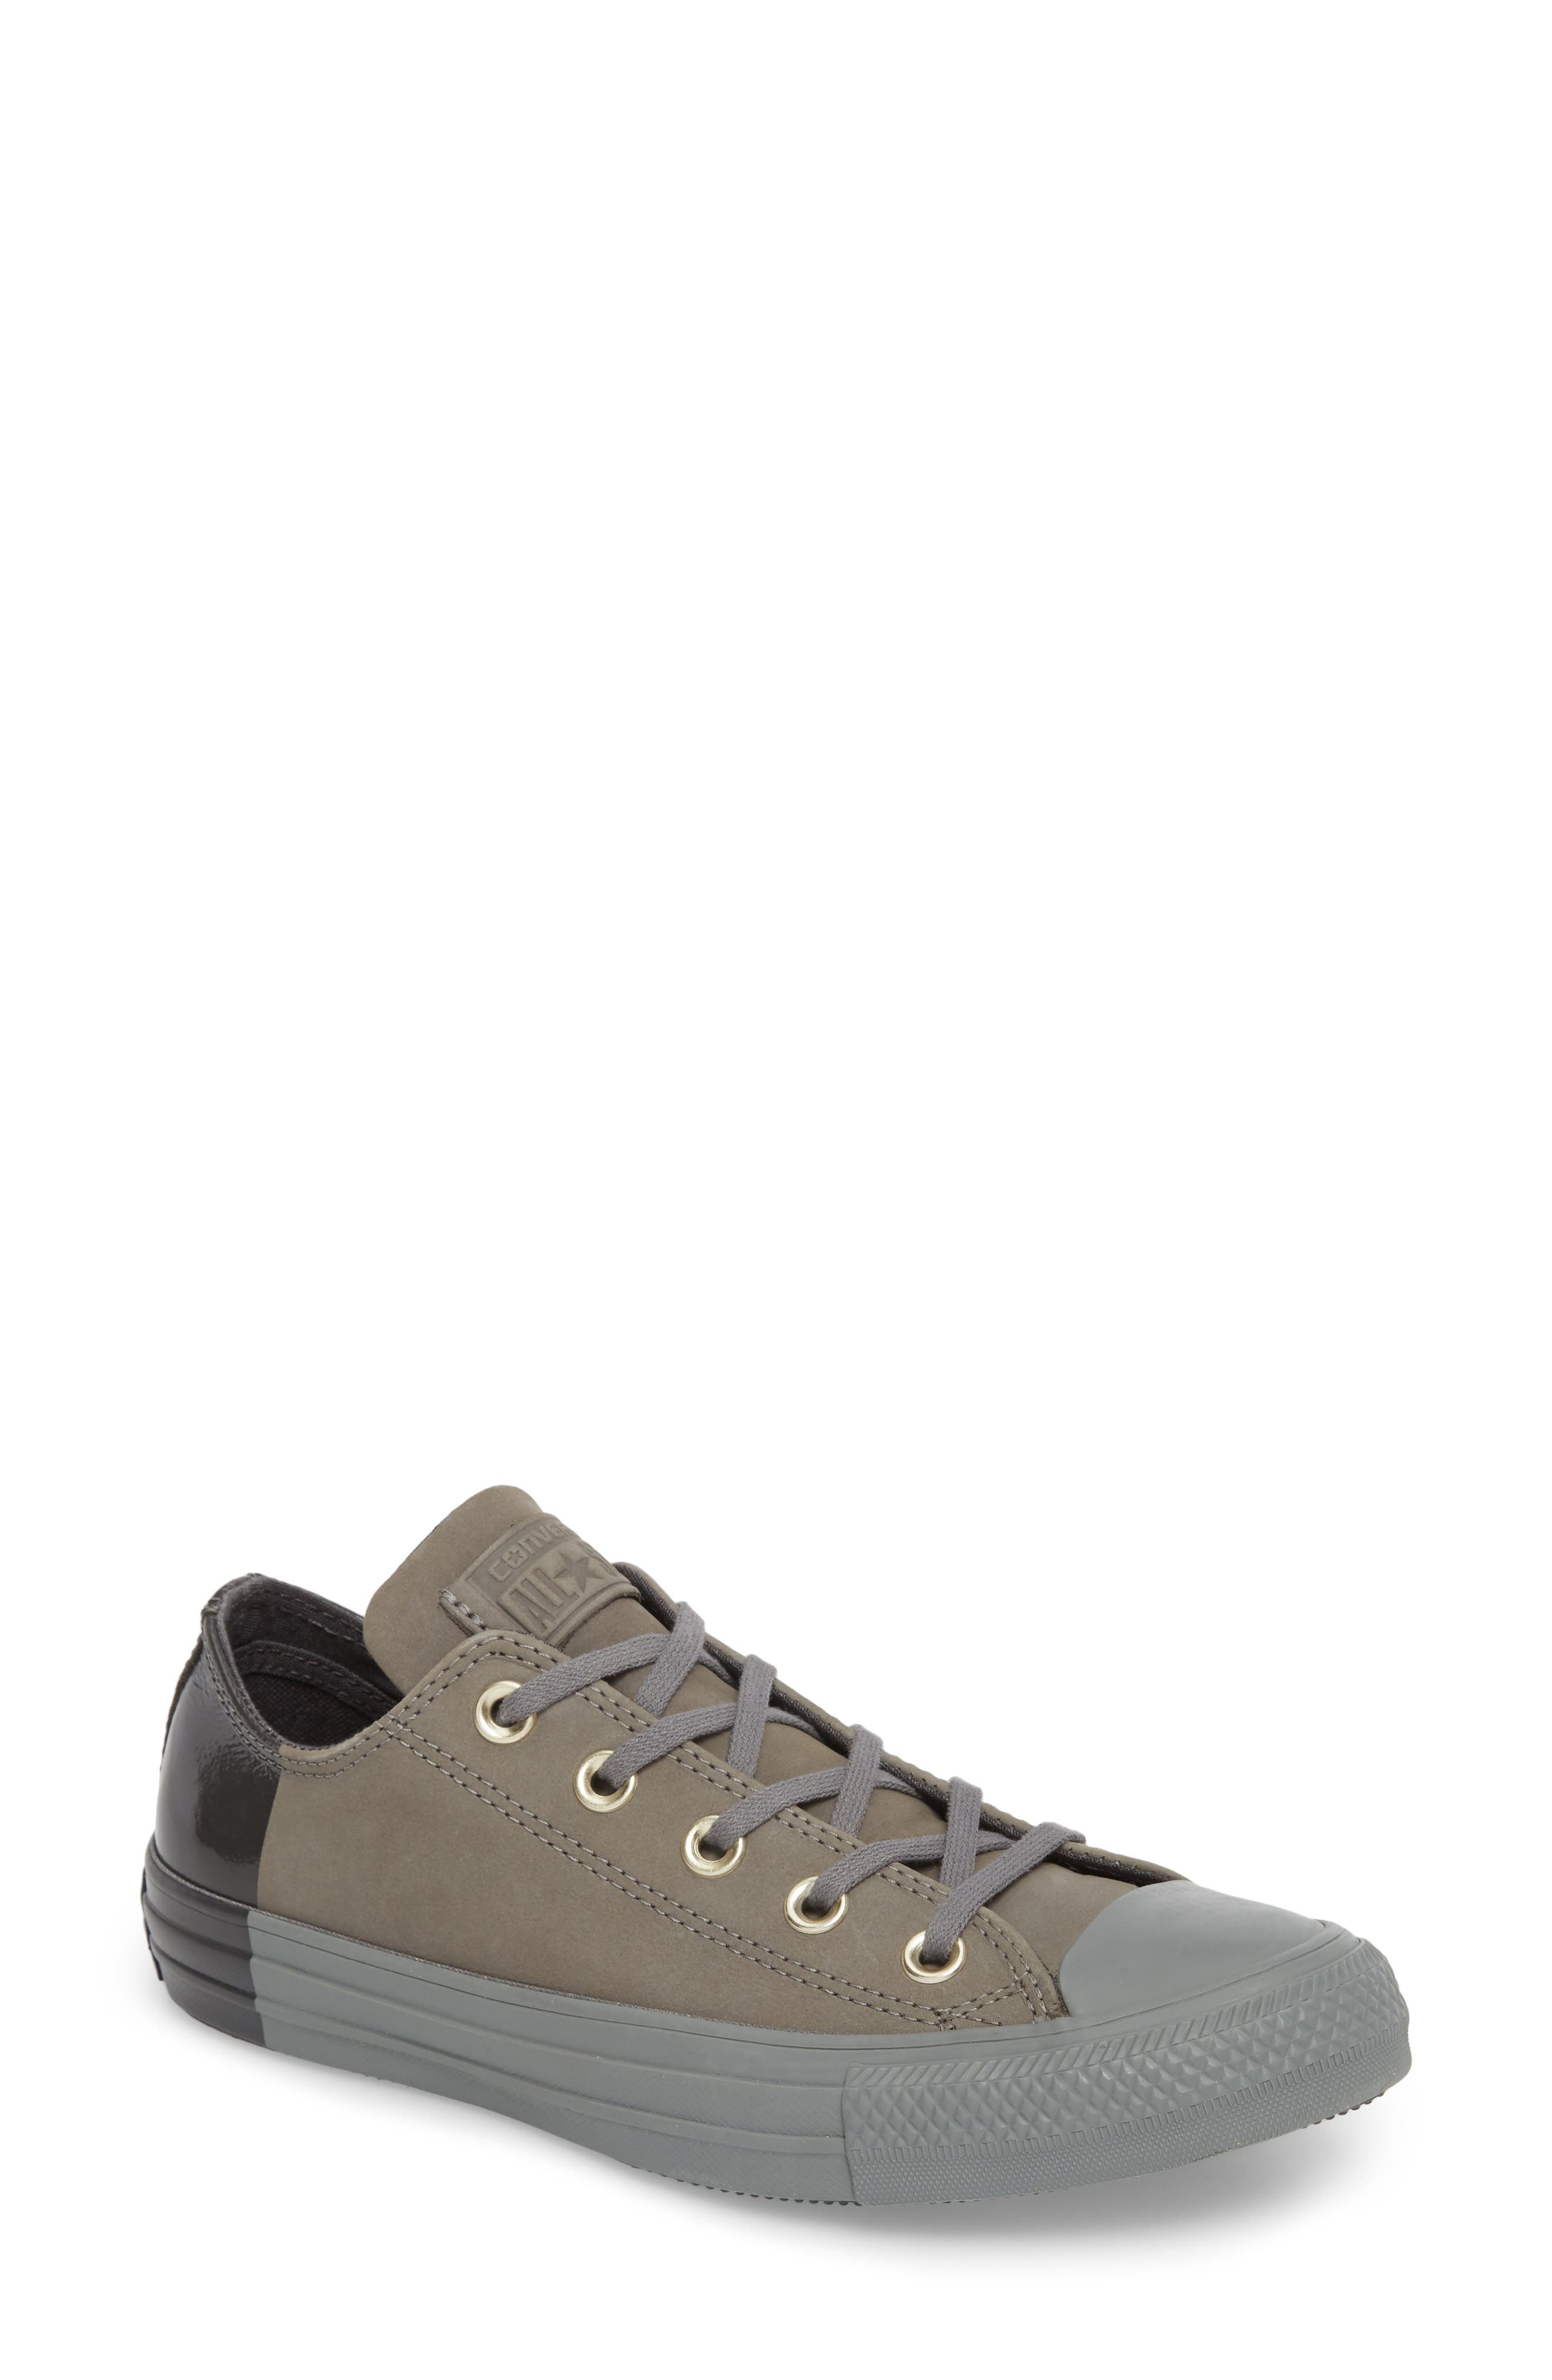 All Star<sup>®</sup> Nubuck OX Low Top Sneaker,                             Main thumbnail 1, color,                             028